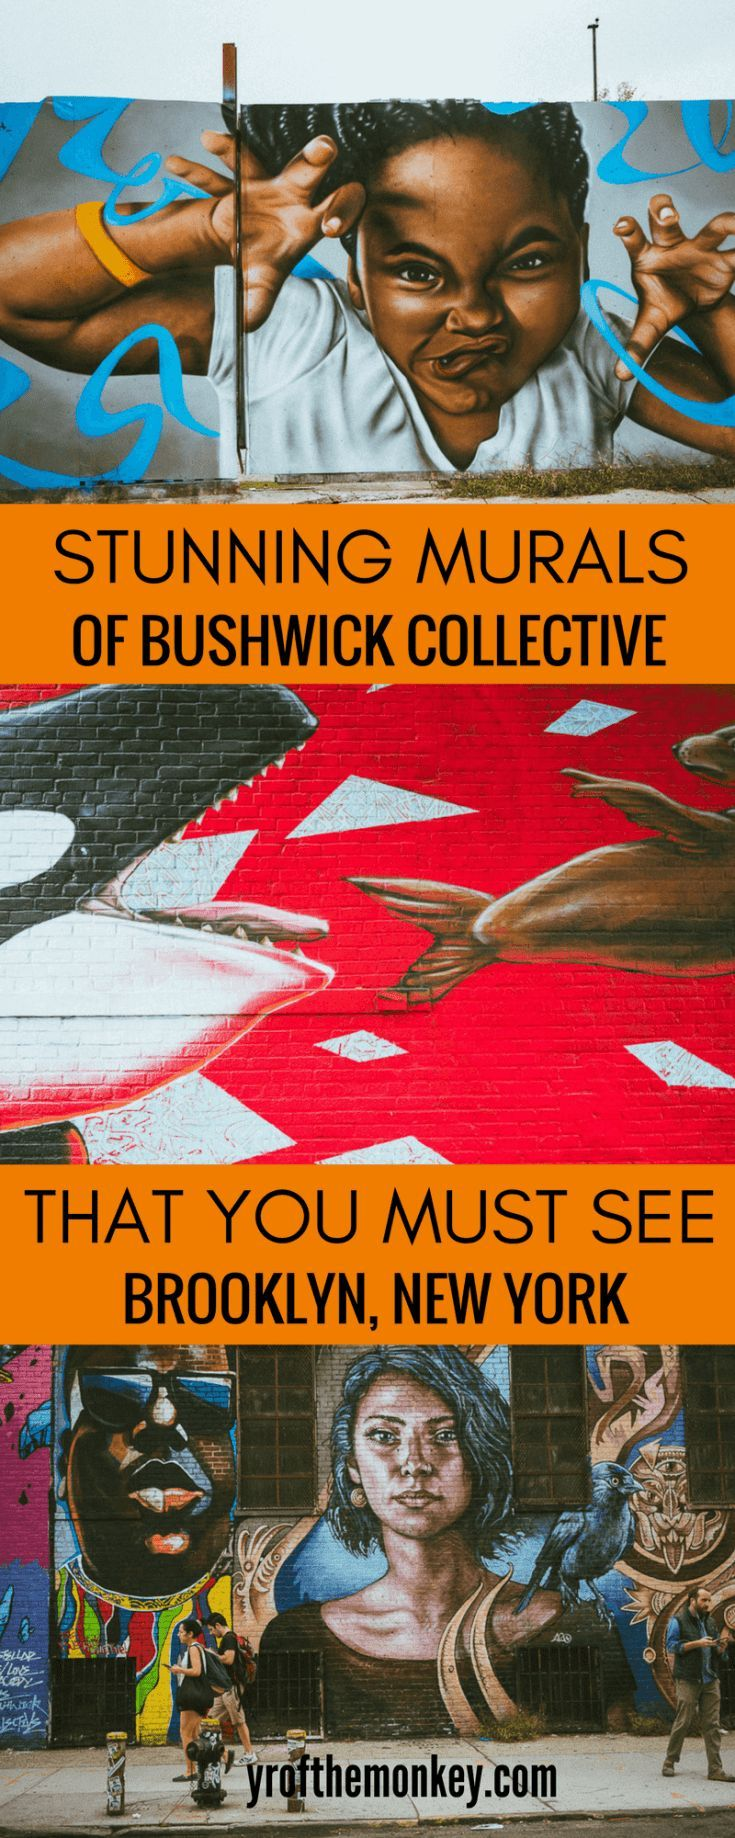 Bushwick Murals is your guide to the stunning Bushwick collective street art in Brooklyn, NYC, USA. Includes a handy Bushwick street art map to locate the murals. Pin it to your New York City travel board as a reminder! #bushwickcollective #streetart #graffiti #murals #newyork #newyorkcity #brooklyn